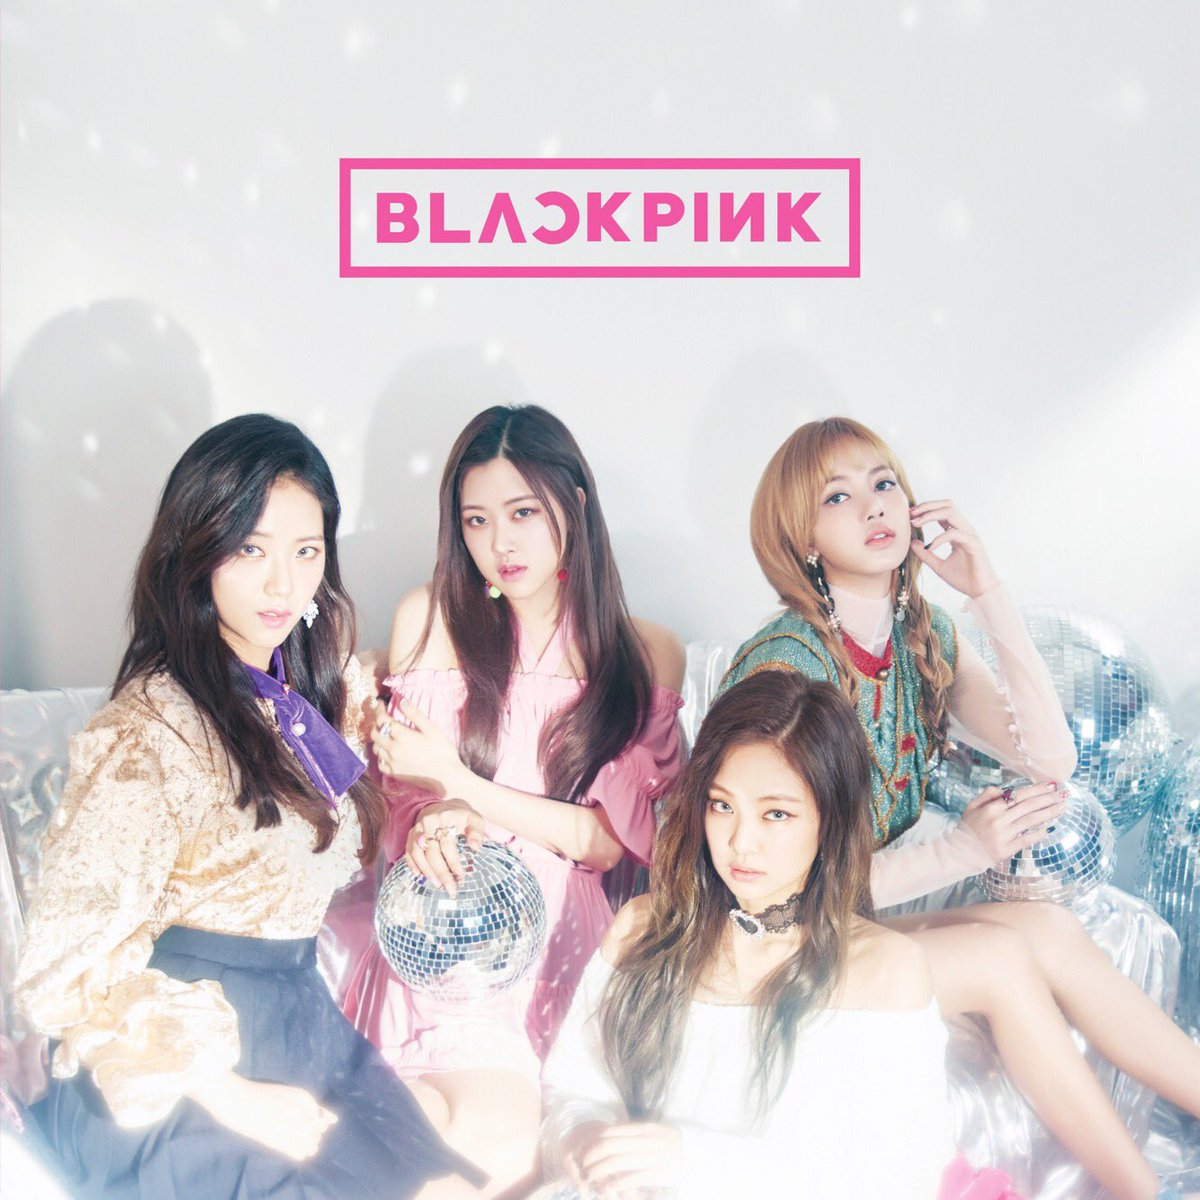 BlackPink Thailand (@BlackPINK_TH)